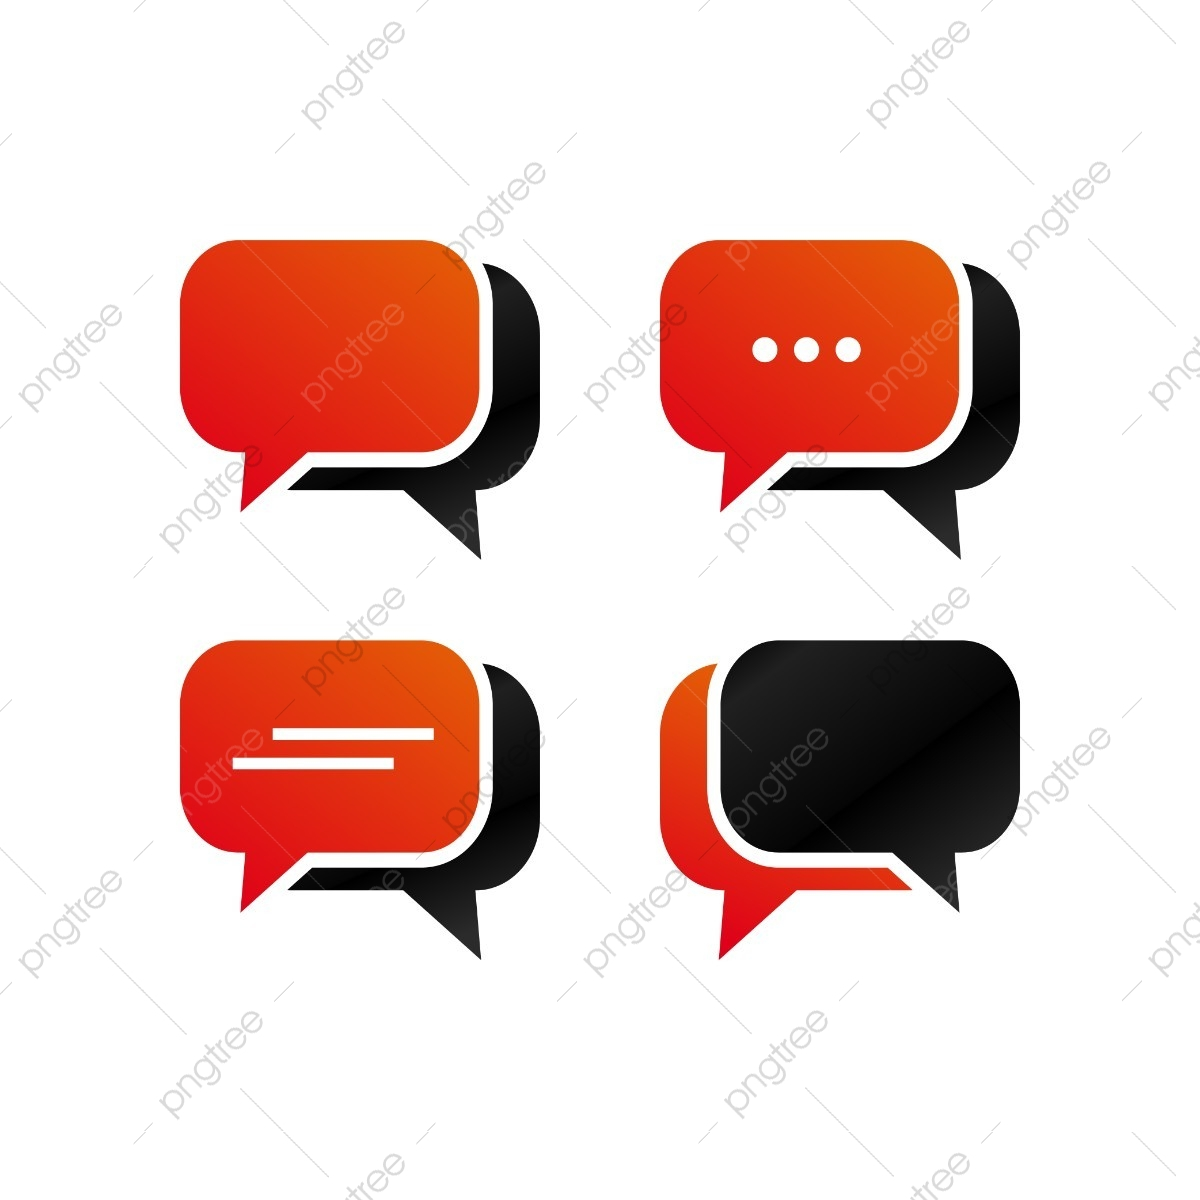 Rounded Rectangle Bubble Chat Icon Template Pack Chat Icons Template Icons Bubble Icons Png And Vector With Transparent Background For Free Download